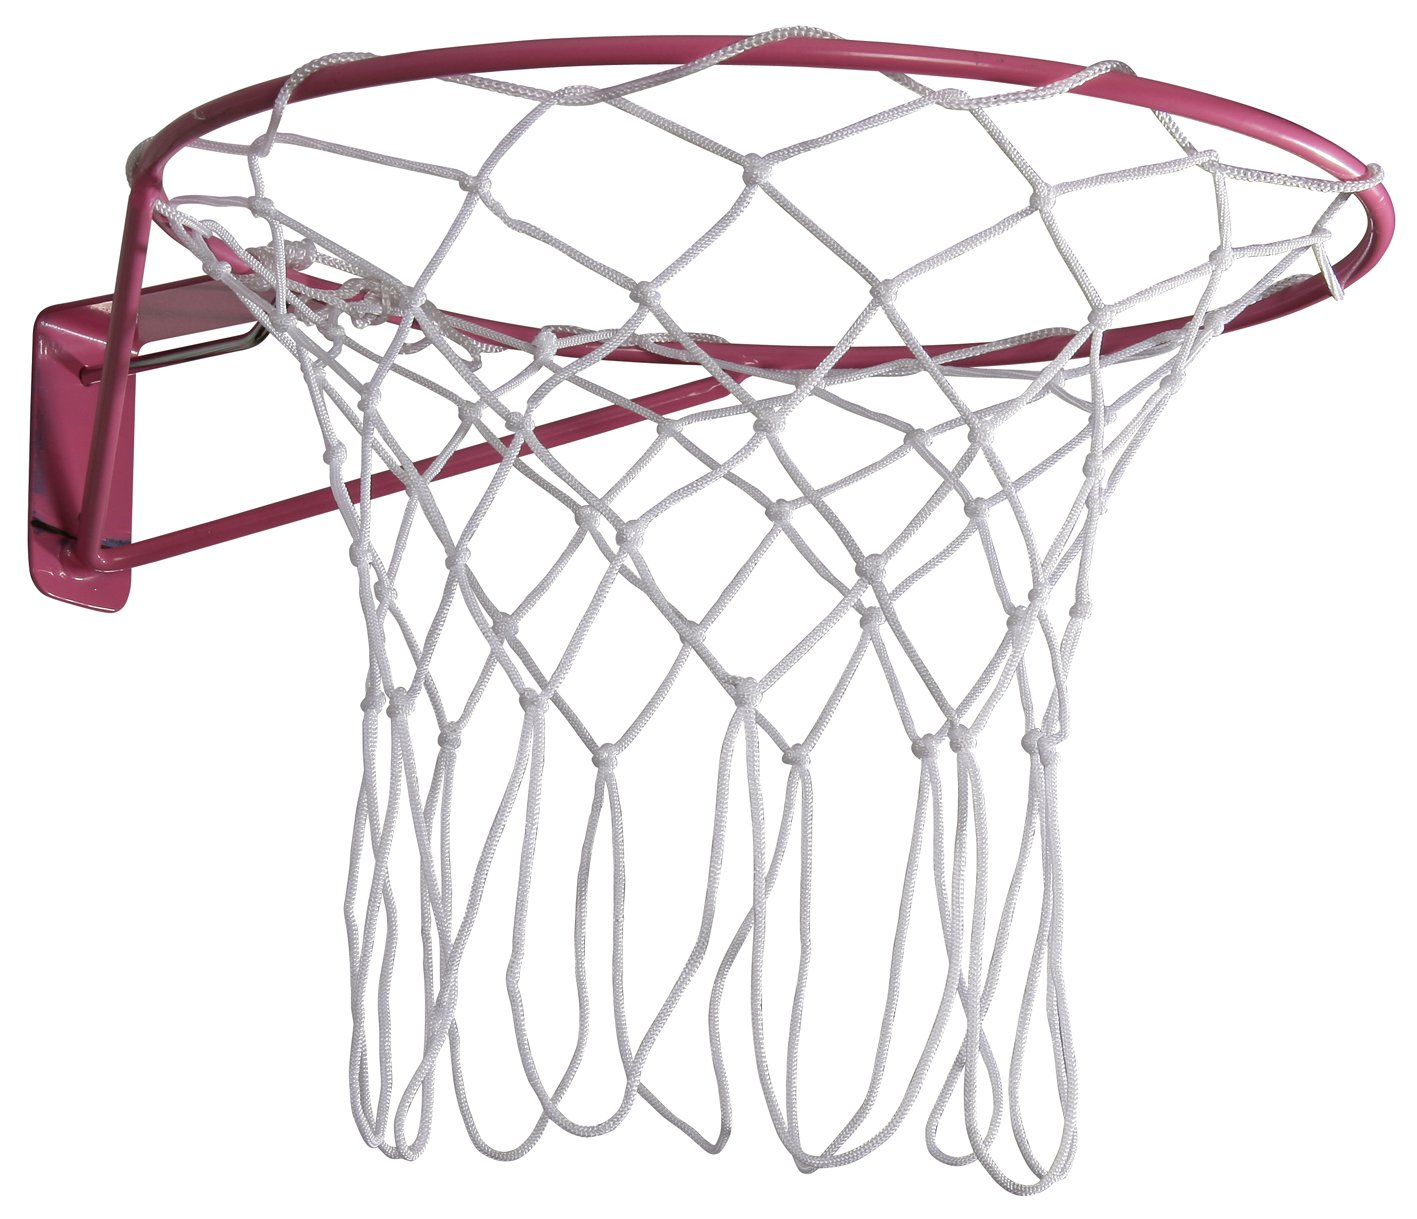 Academy Wall Mounted Netball Goal Ring - Pink One Size Grays 86880049